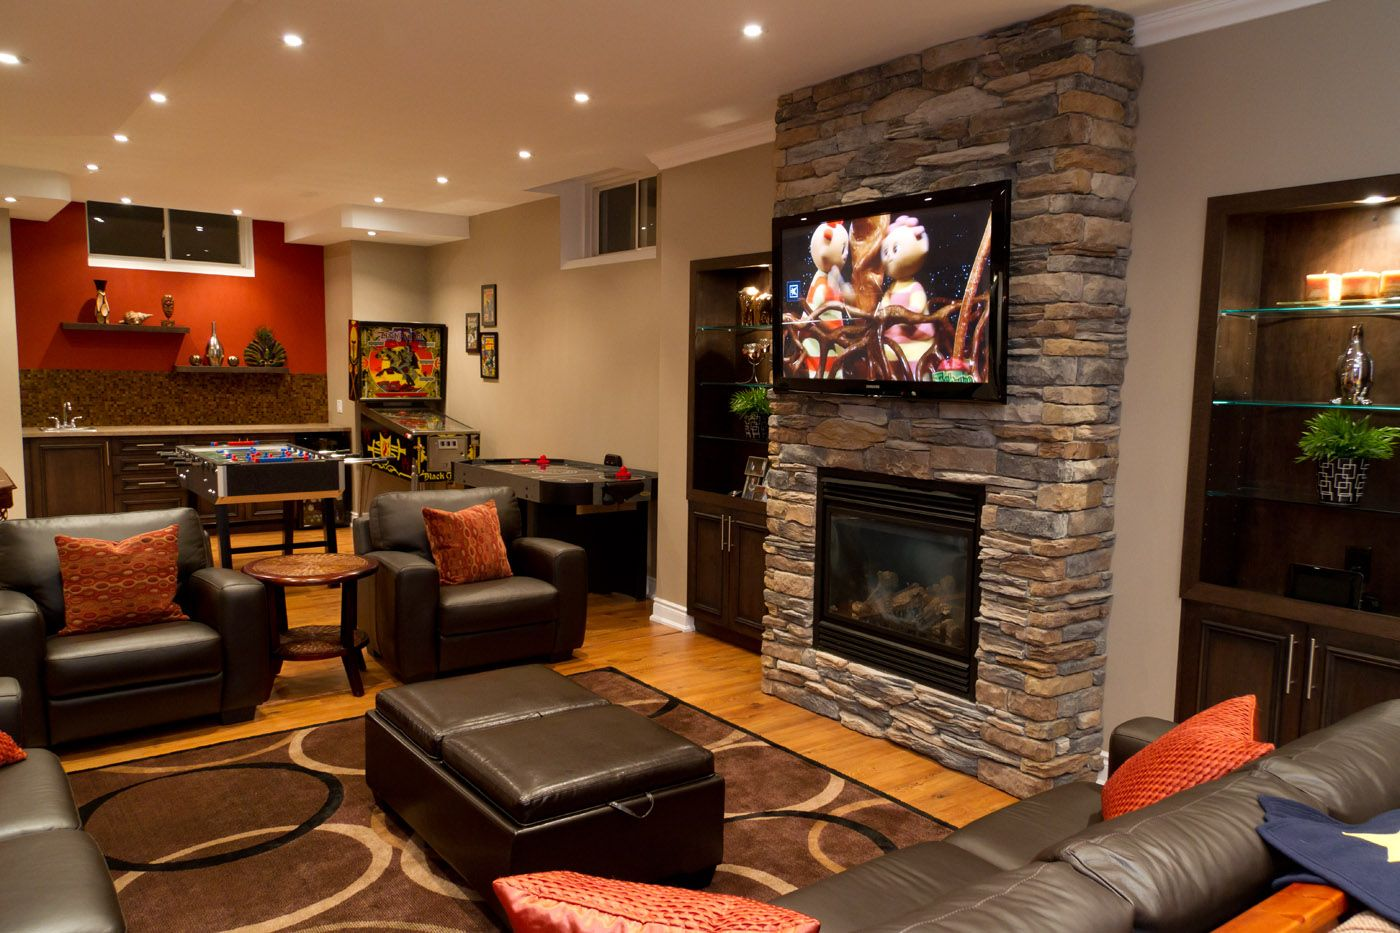 Basement Living Room Designs Impressive Basement Playroom Ideas  Finished Basement Basement Renovations Inspiration Design